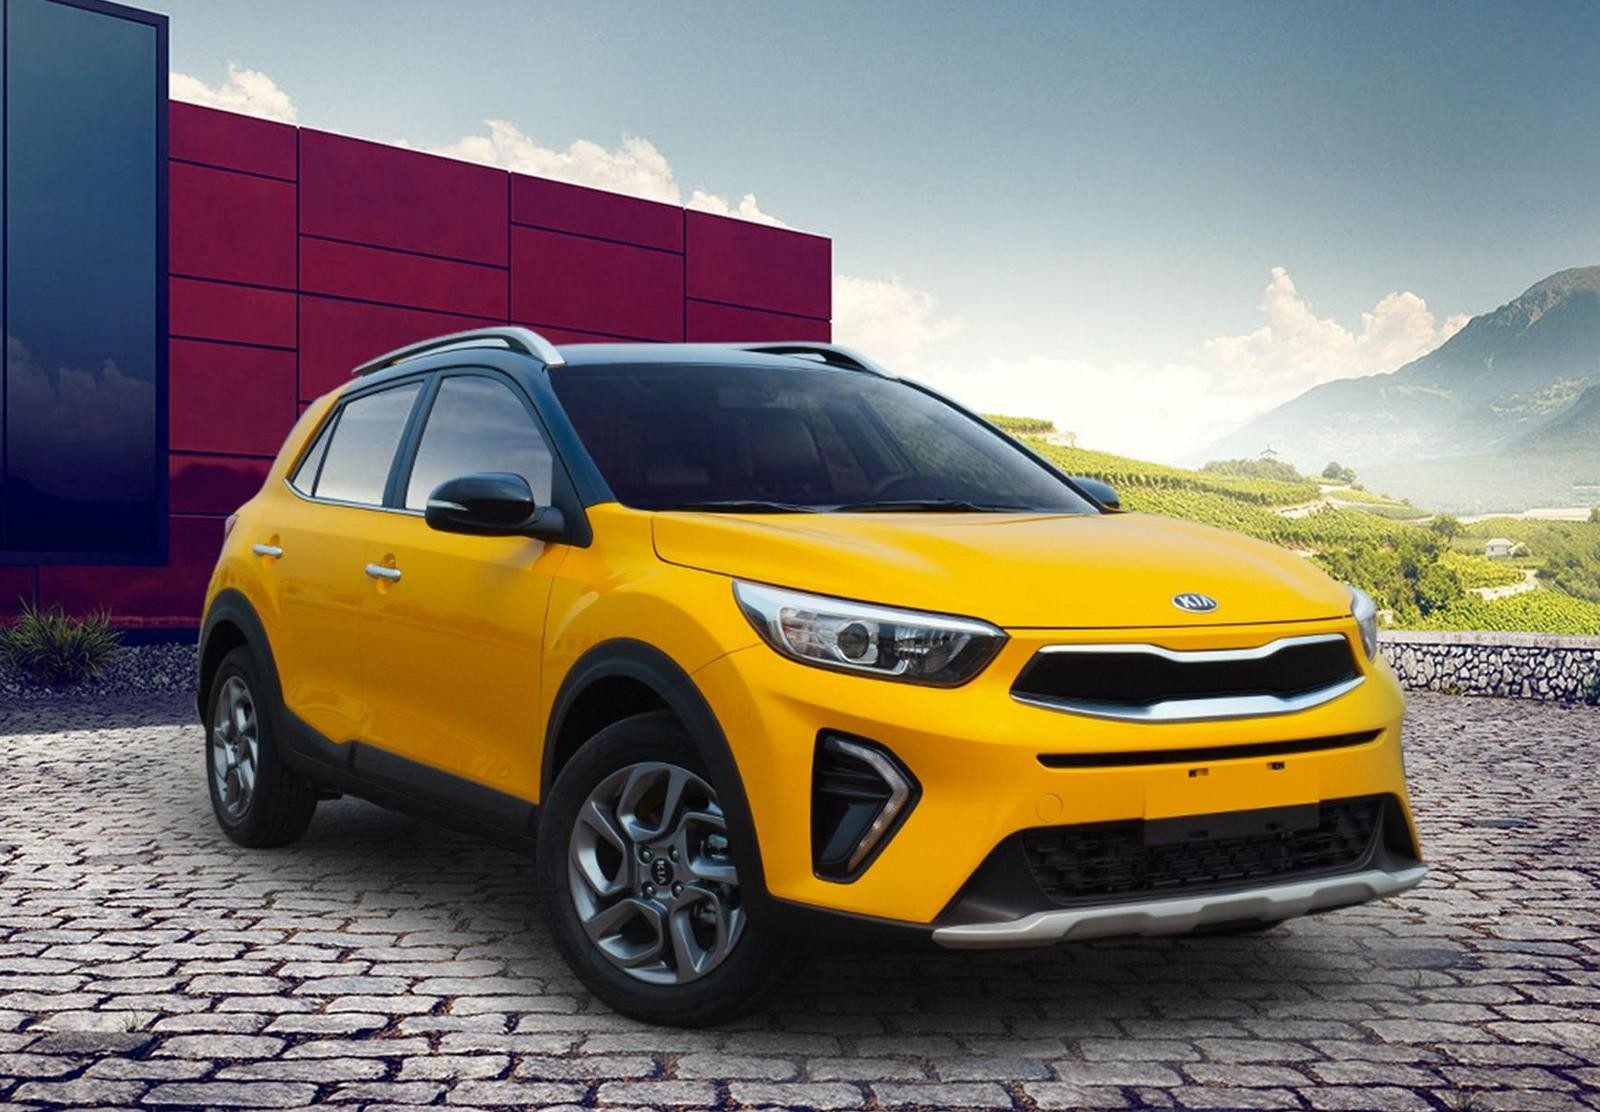 Kia has announced the forthcoming launch of its Stonic crossover SUV in Philippines in October. However, the car differs from its international version in both style and substance, so let's figure out what it really is.